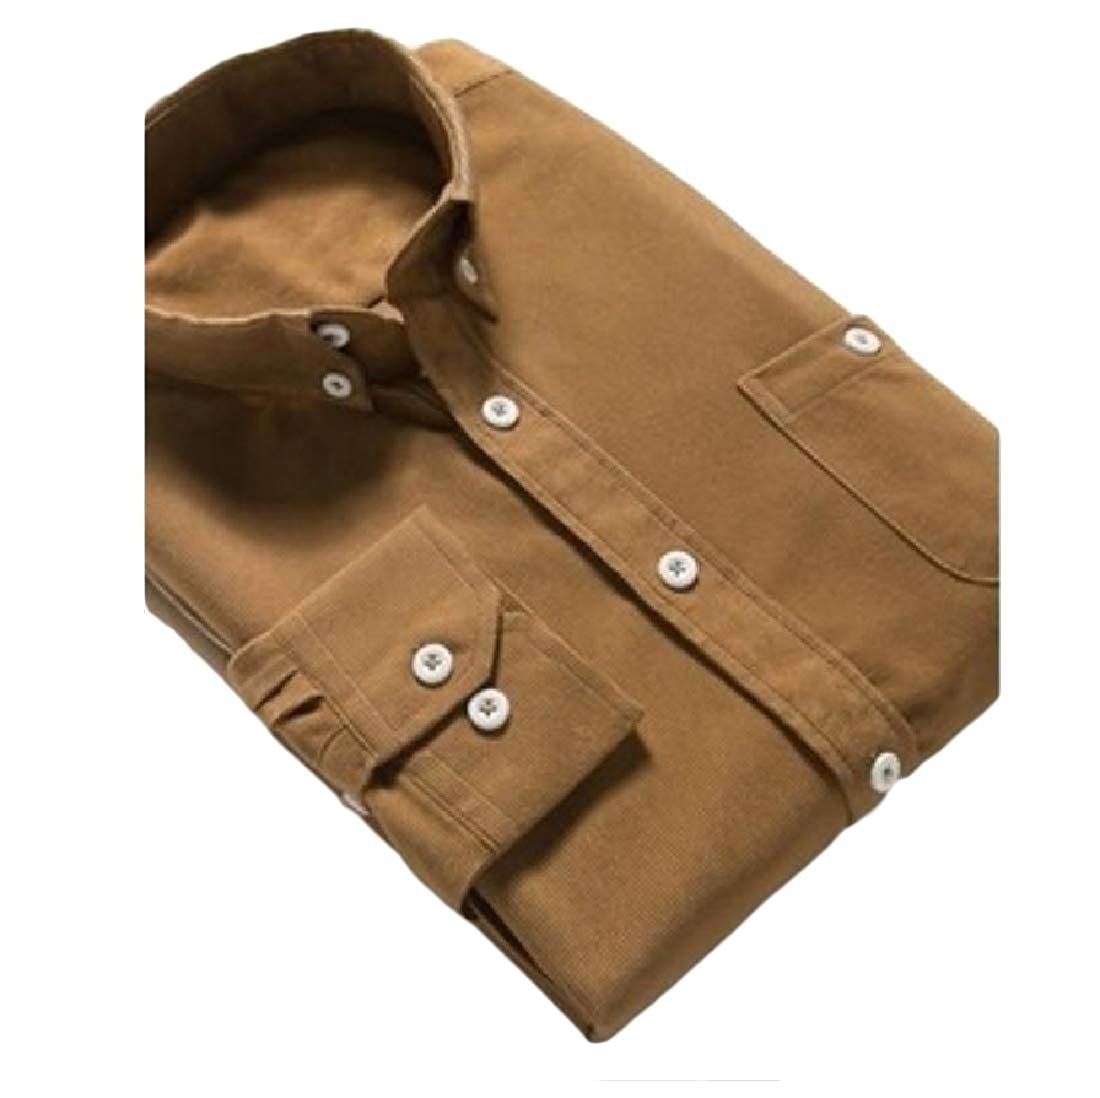 Beeatree Mens Tops Business Button-Down-Shirts Corduroy Loose Fit Shirts